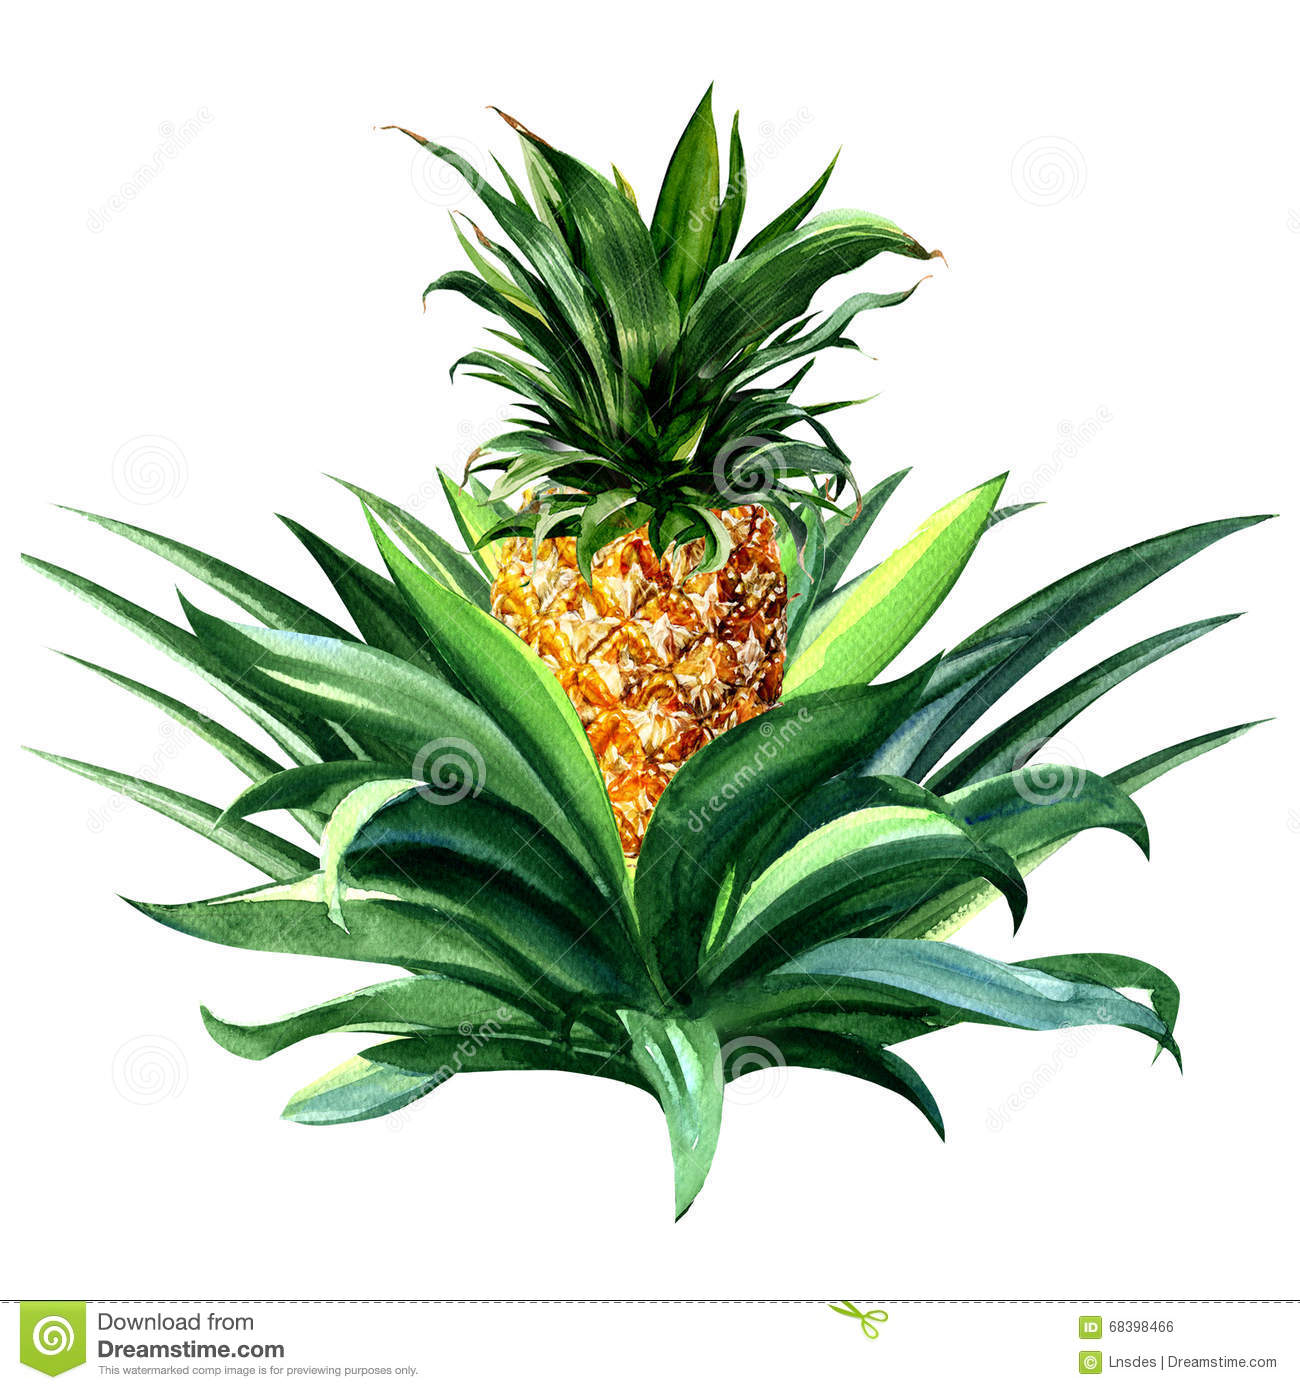 Pineapple plant clipart 20 free Cliparts   Download images ...